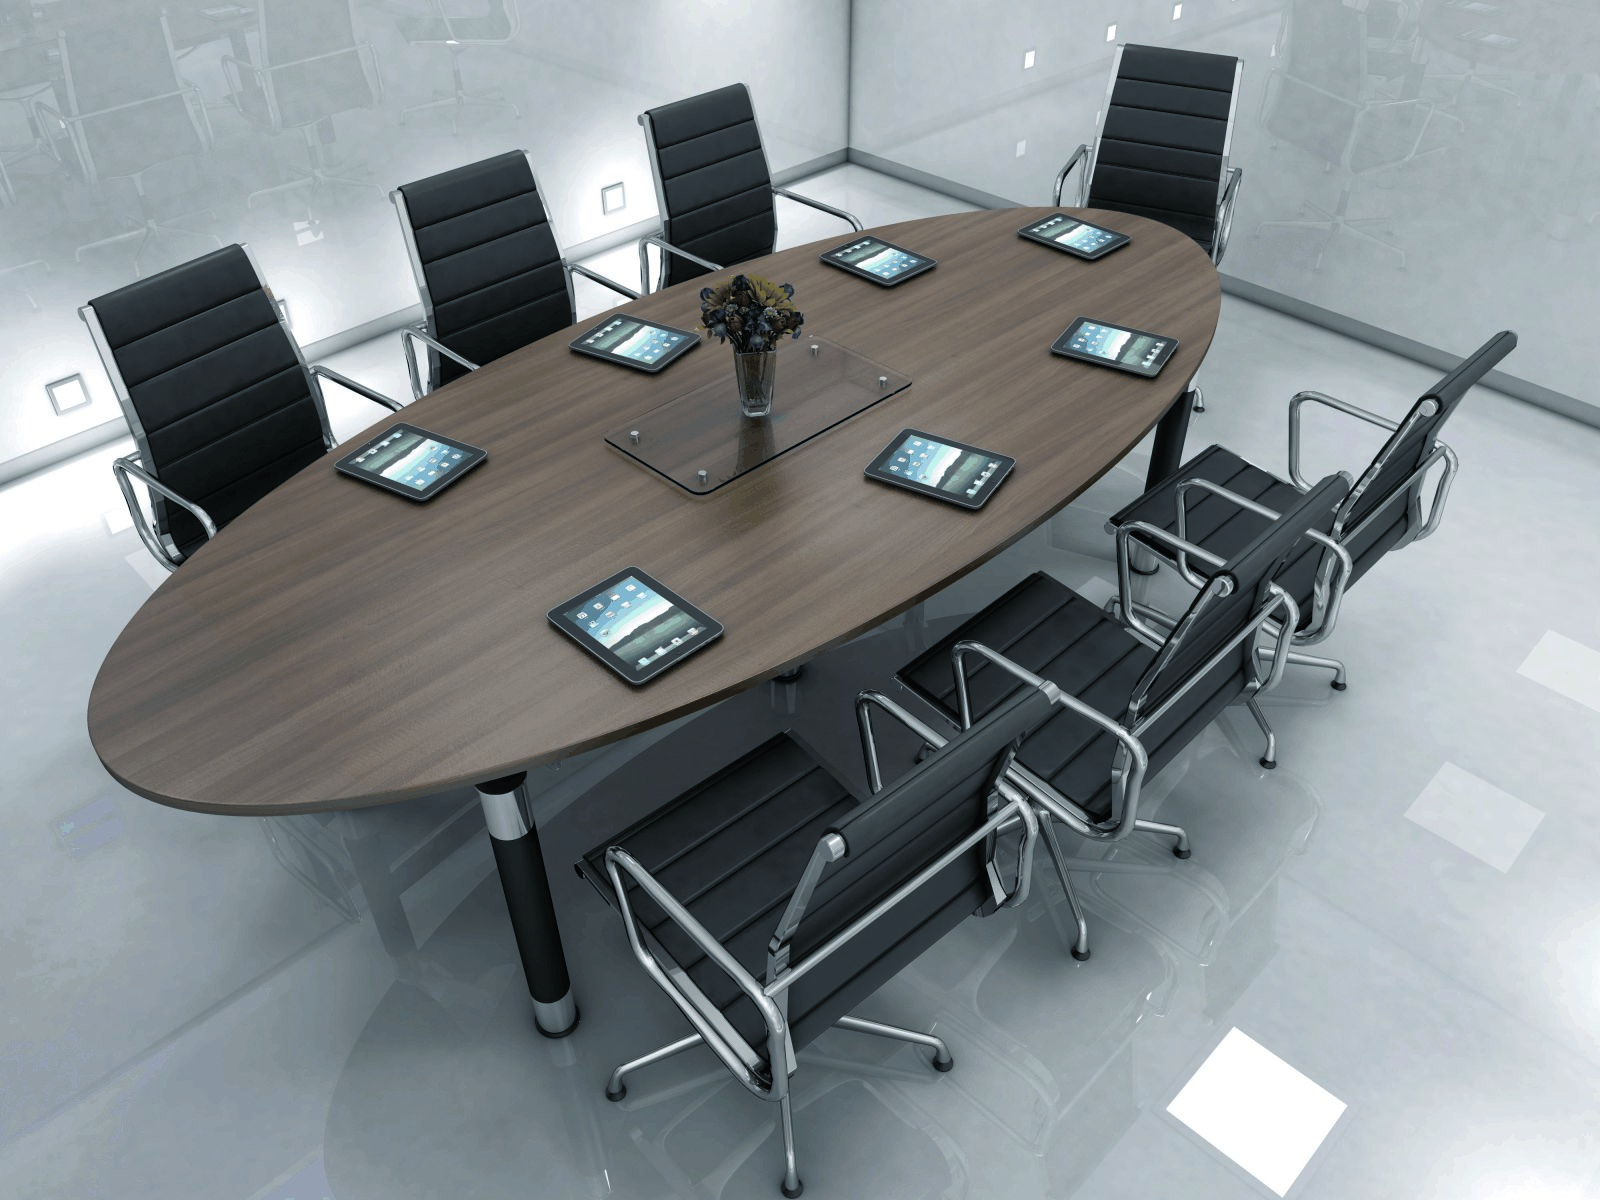 Oval conference table - Oval Meeting Desk Round Table